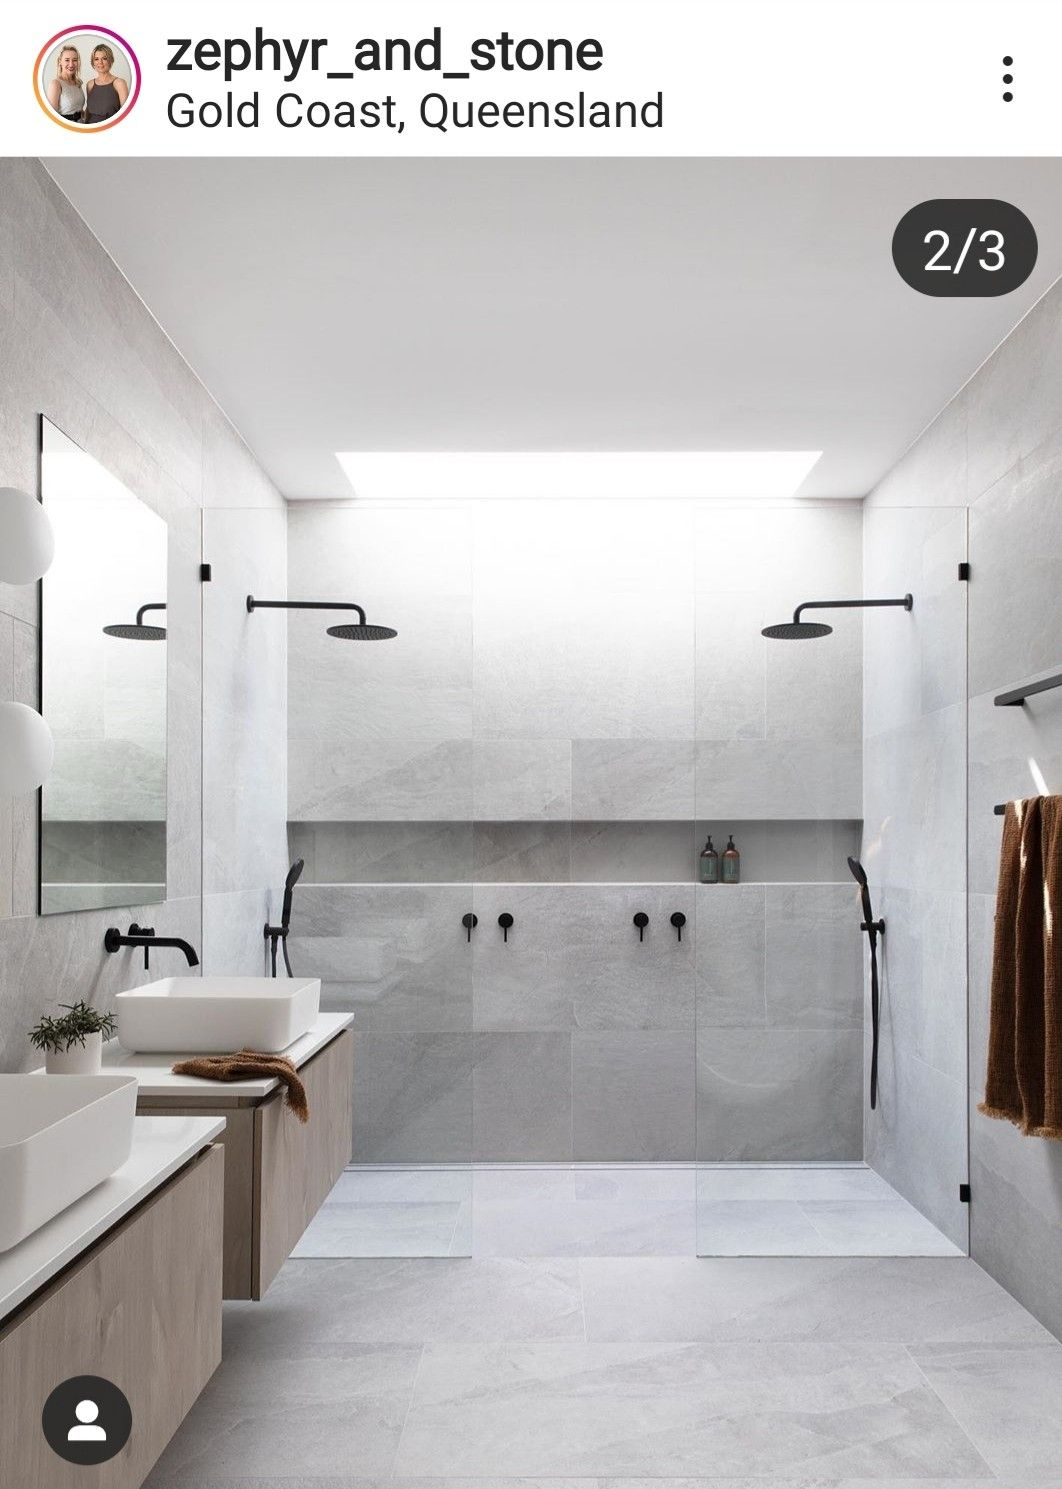 Pin By Erica Johnston On Phil Ad Bathroom Interior Bathroom Interior Design Bathroom Design Inspiration